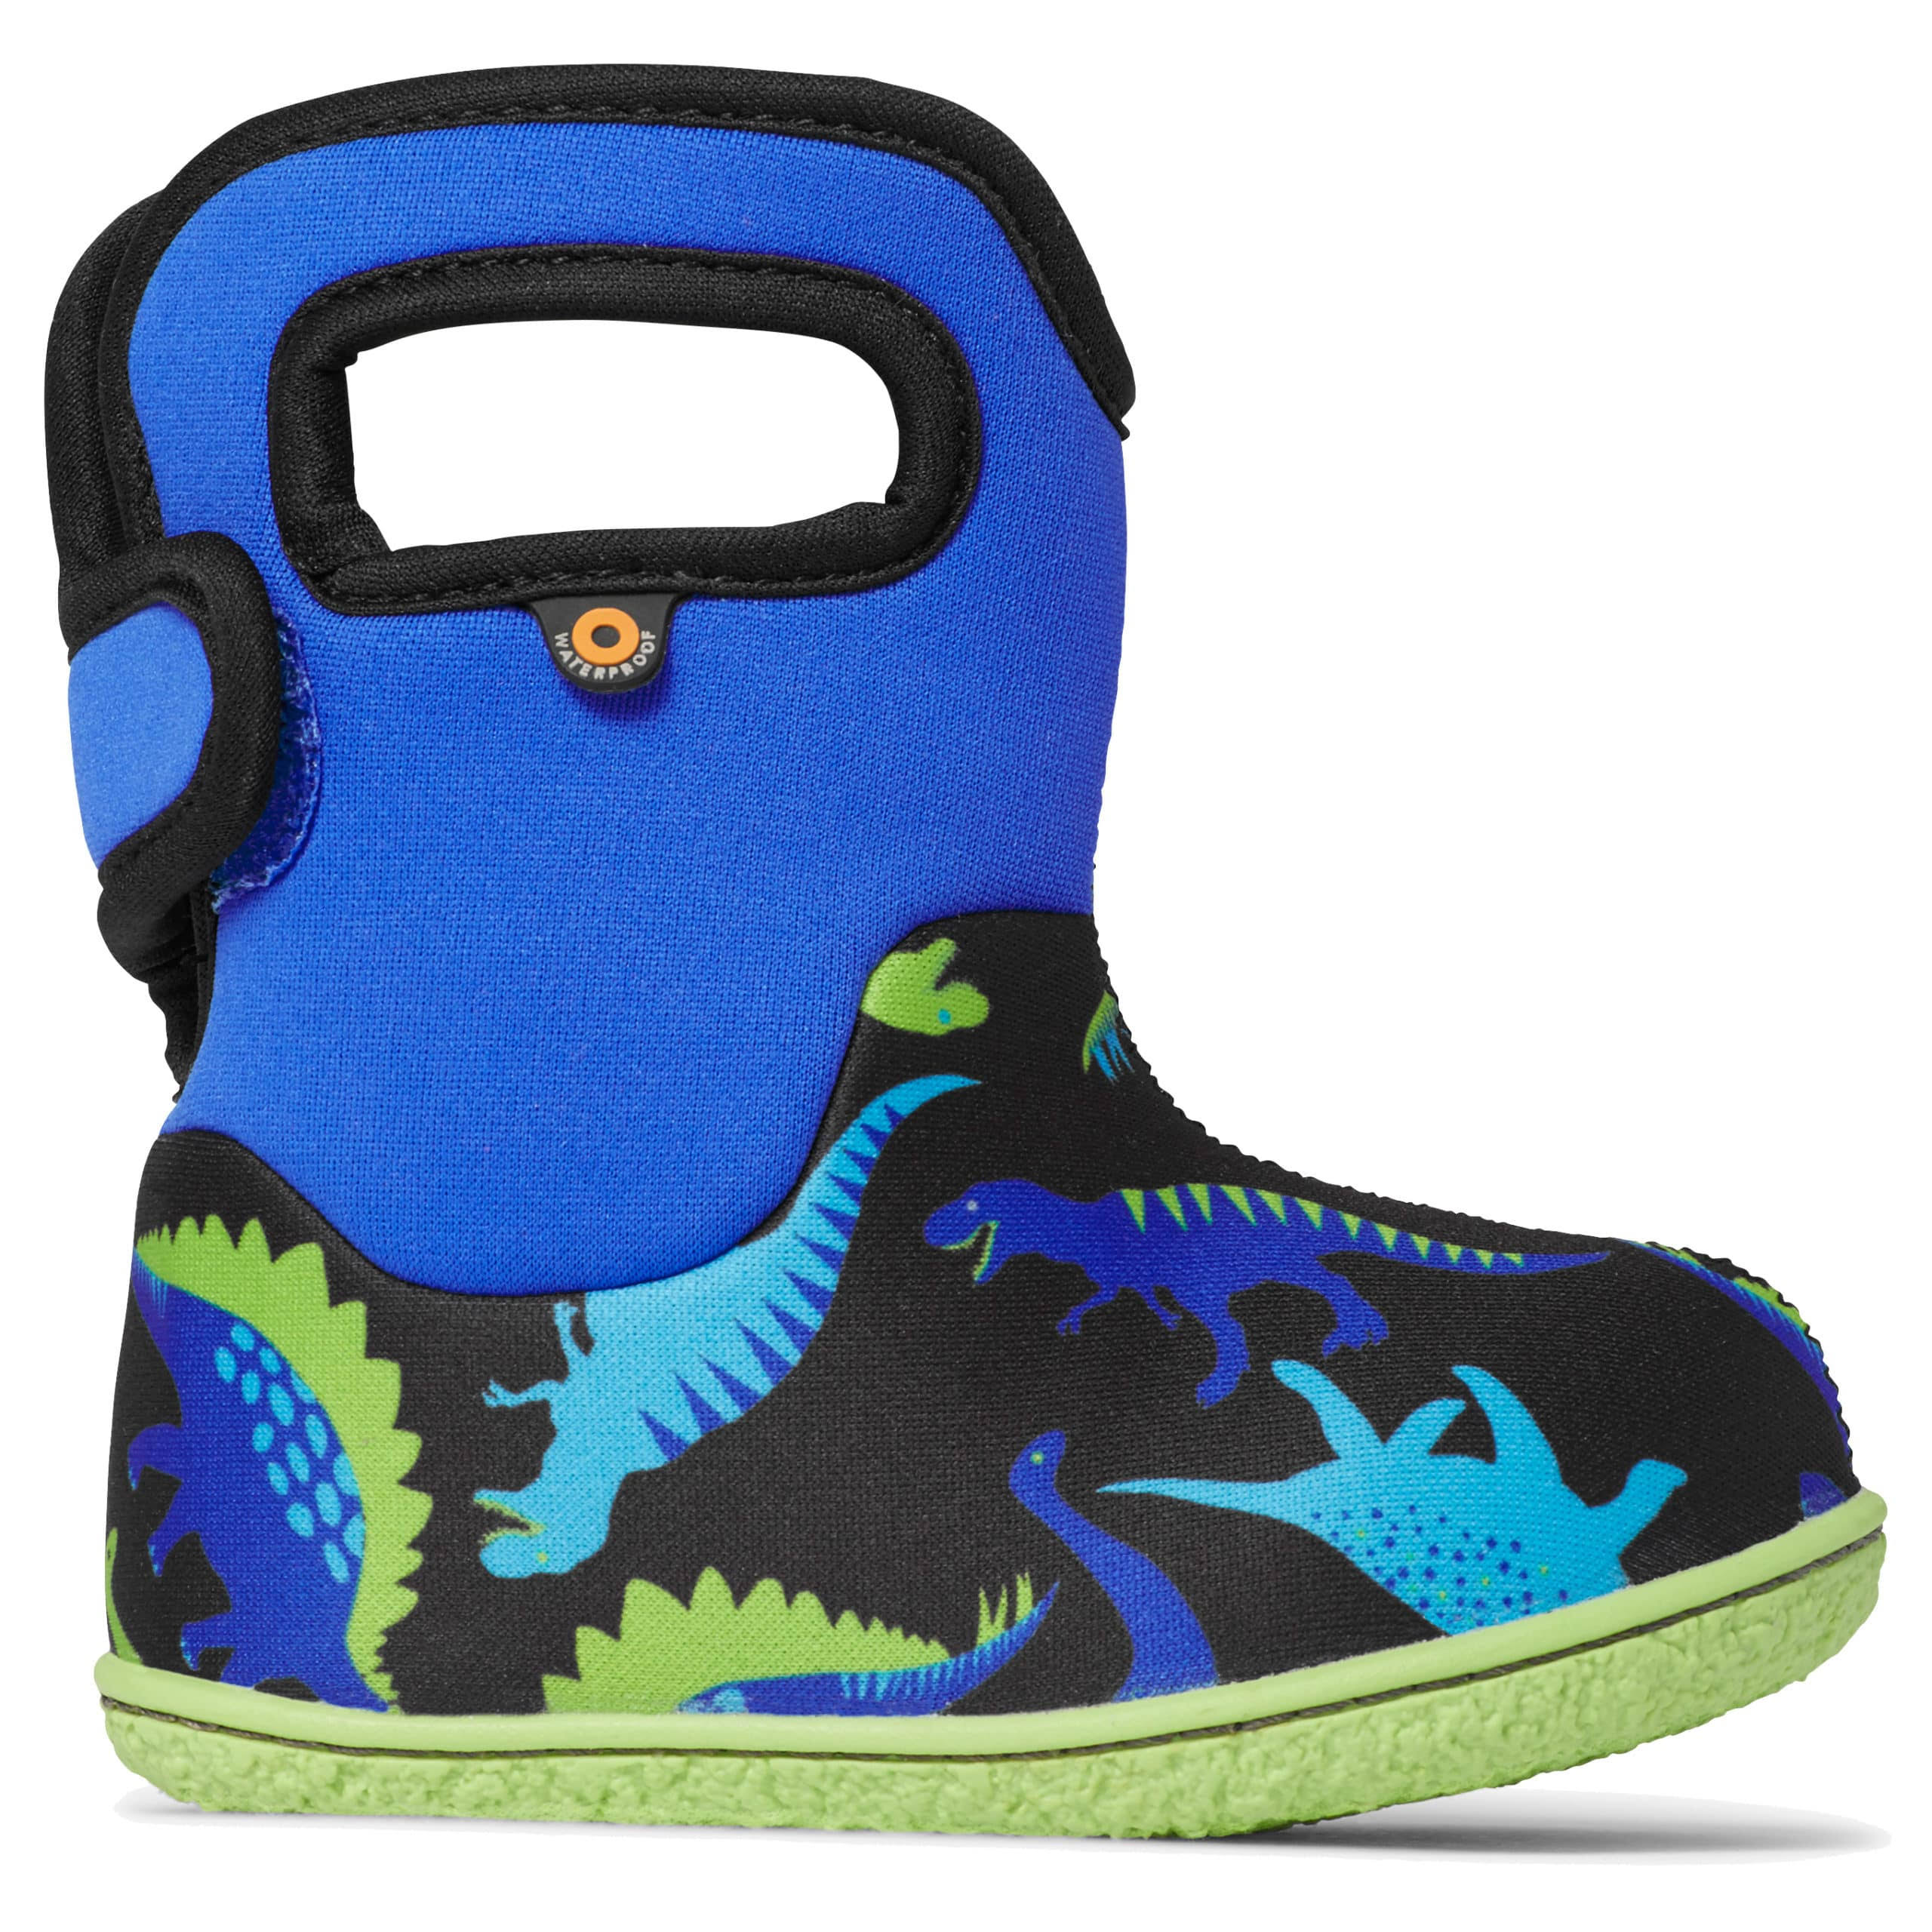 Bogs Baby Dino Boots - Blue